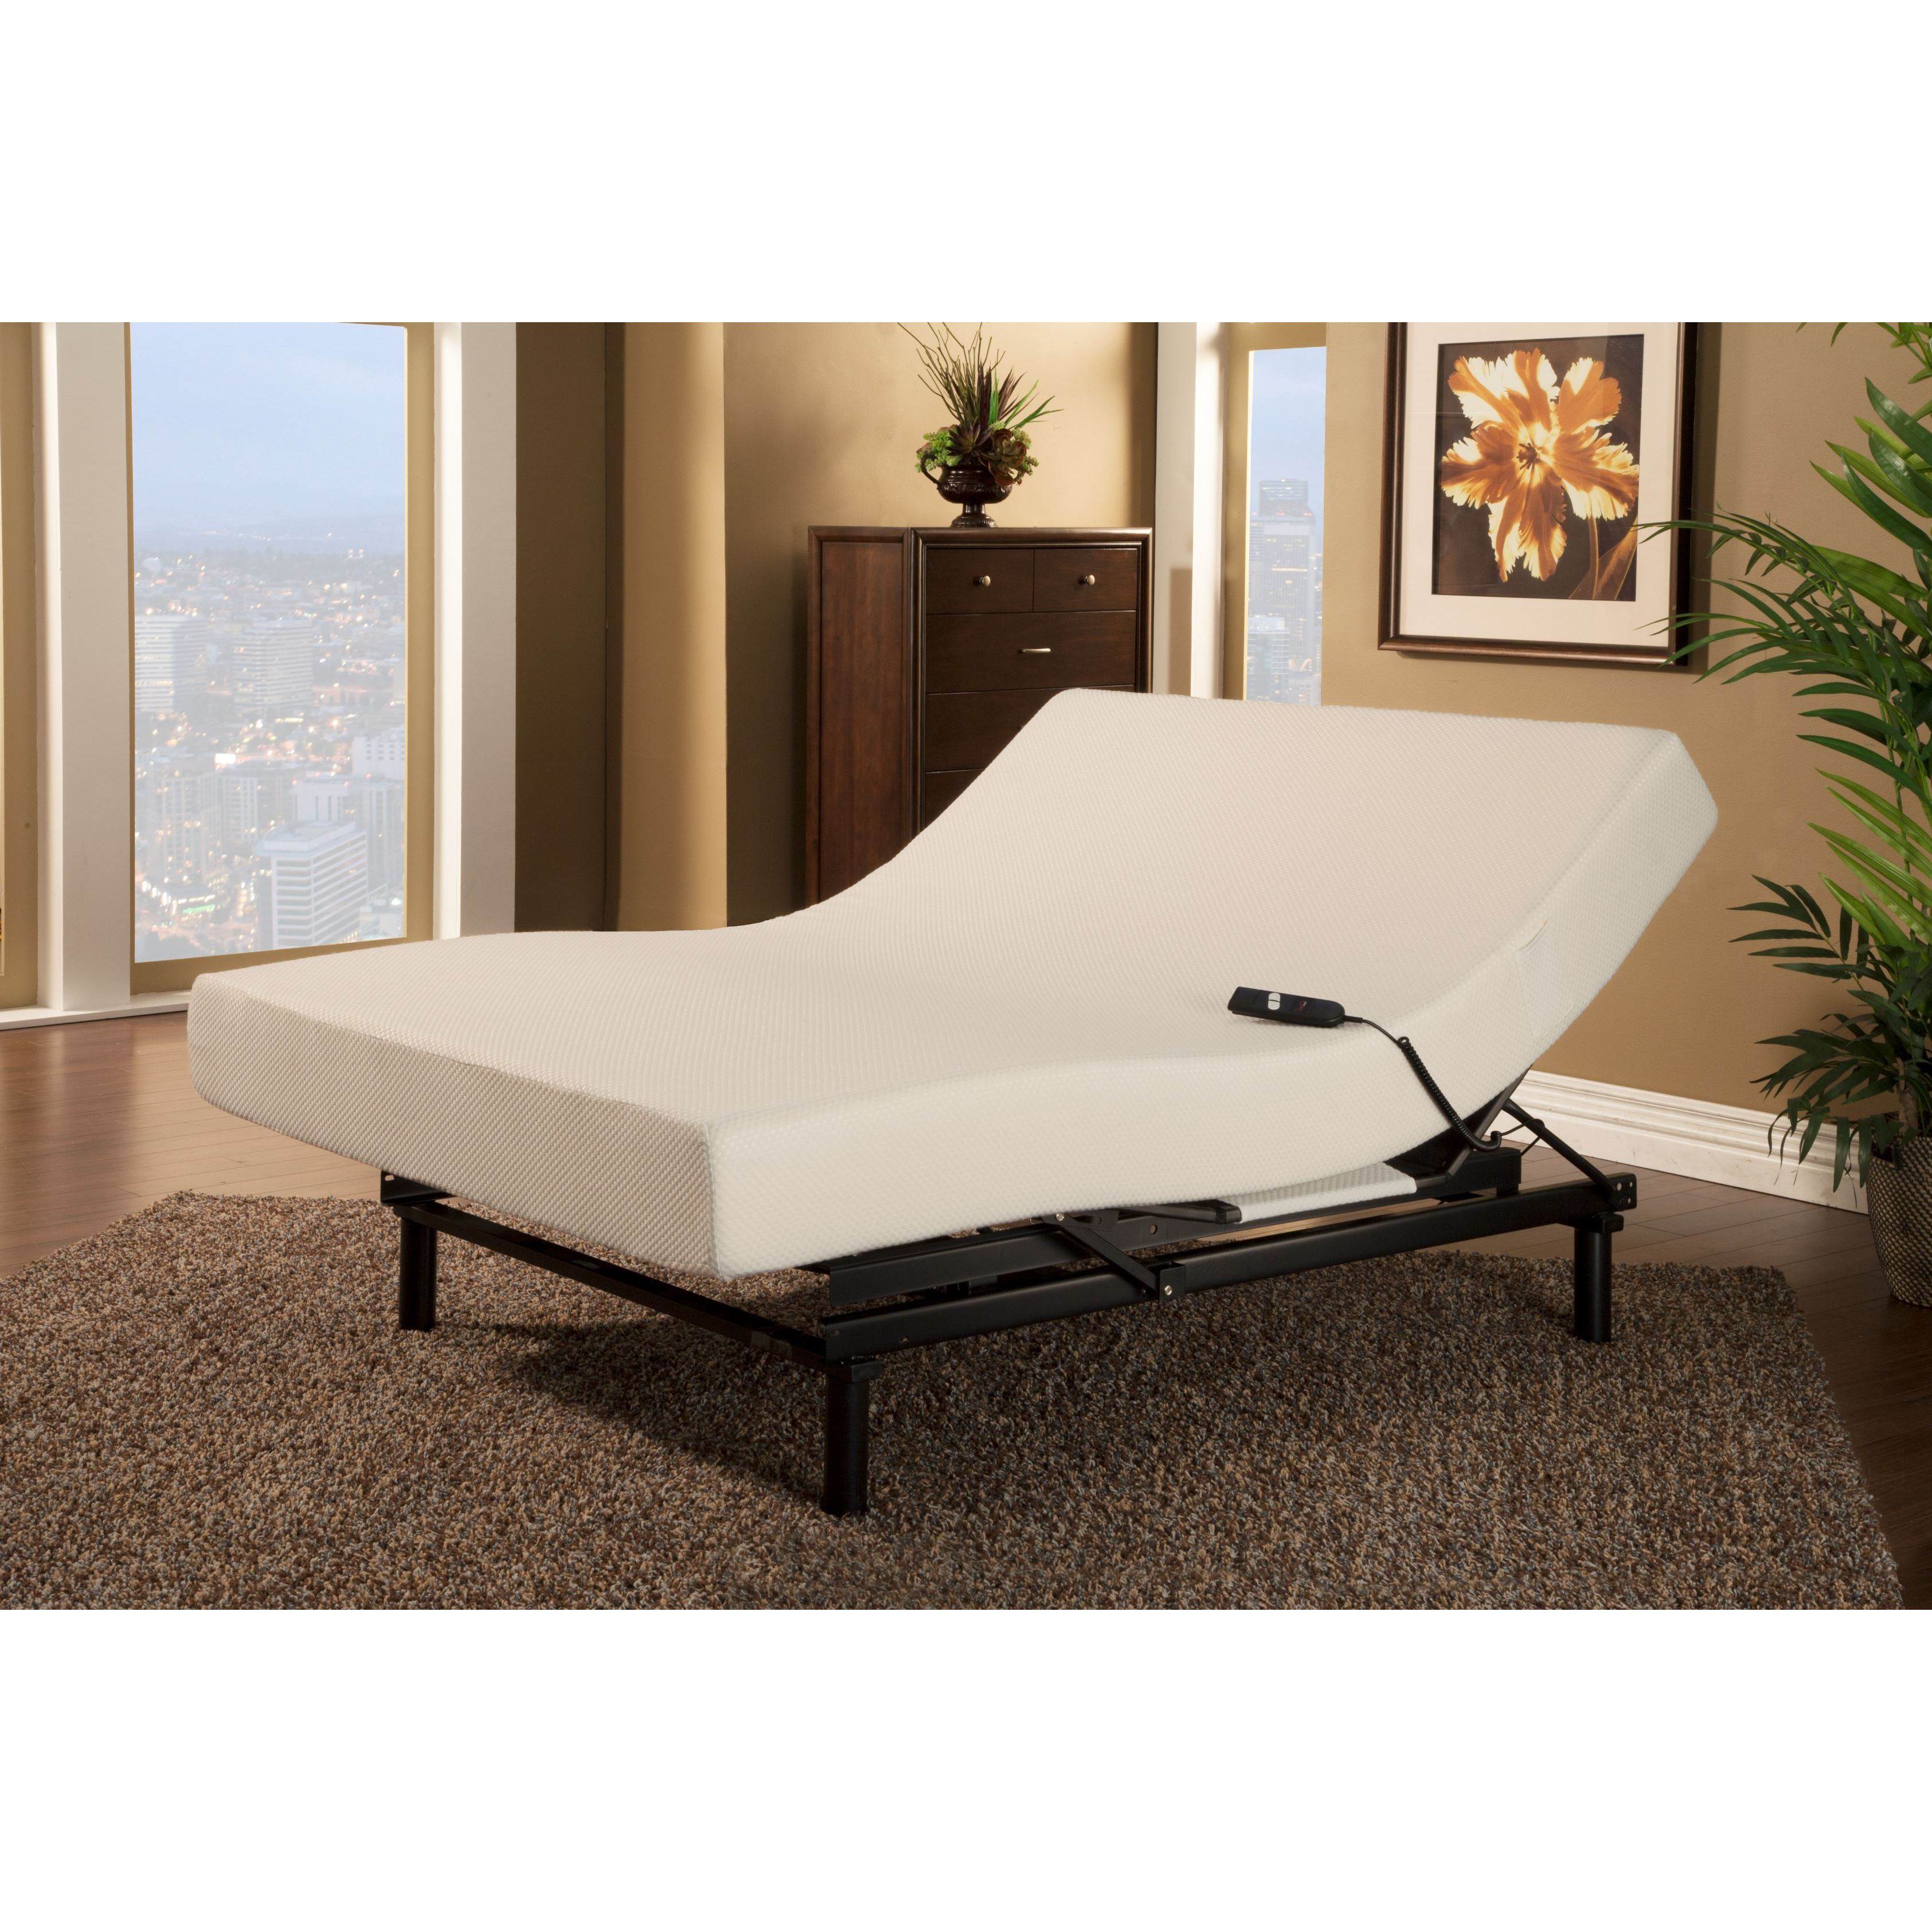 Sleep Zone Loft Single Motor Adjustable Bed with Queen-size Visco Memory Foam Mattress at Sears.com